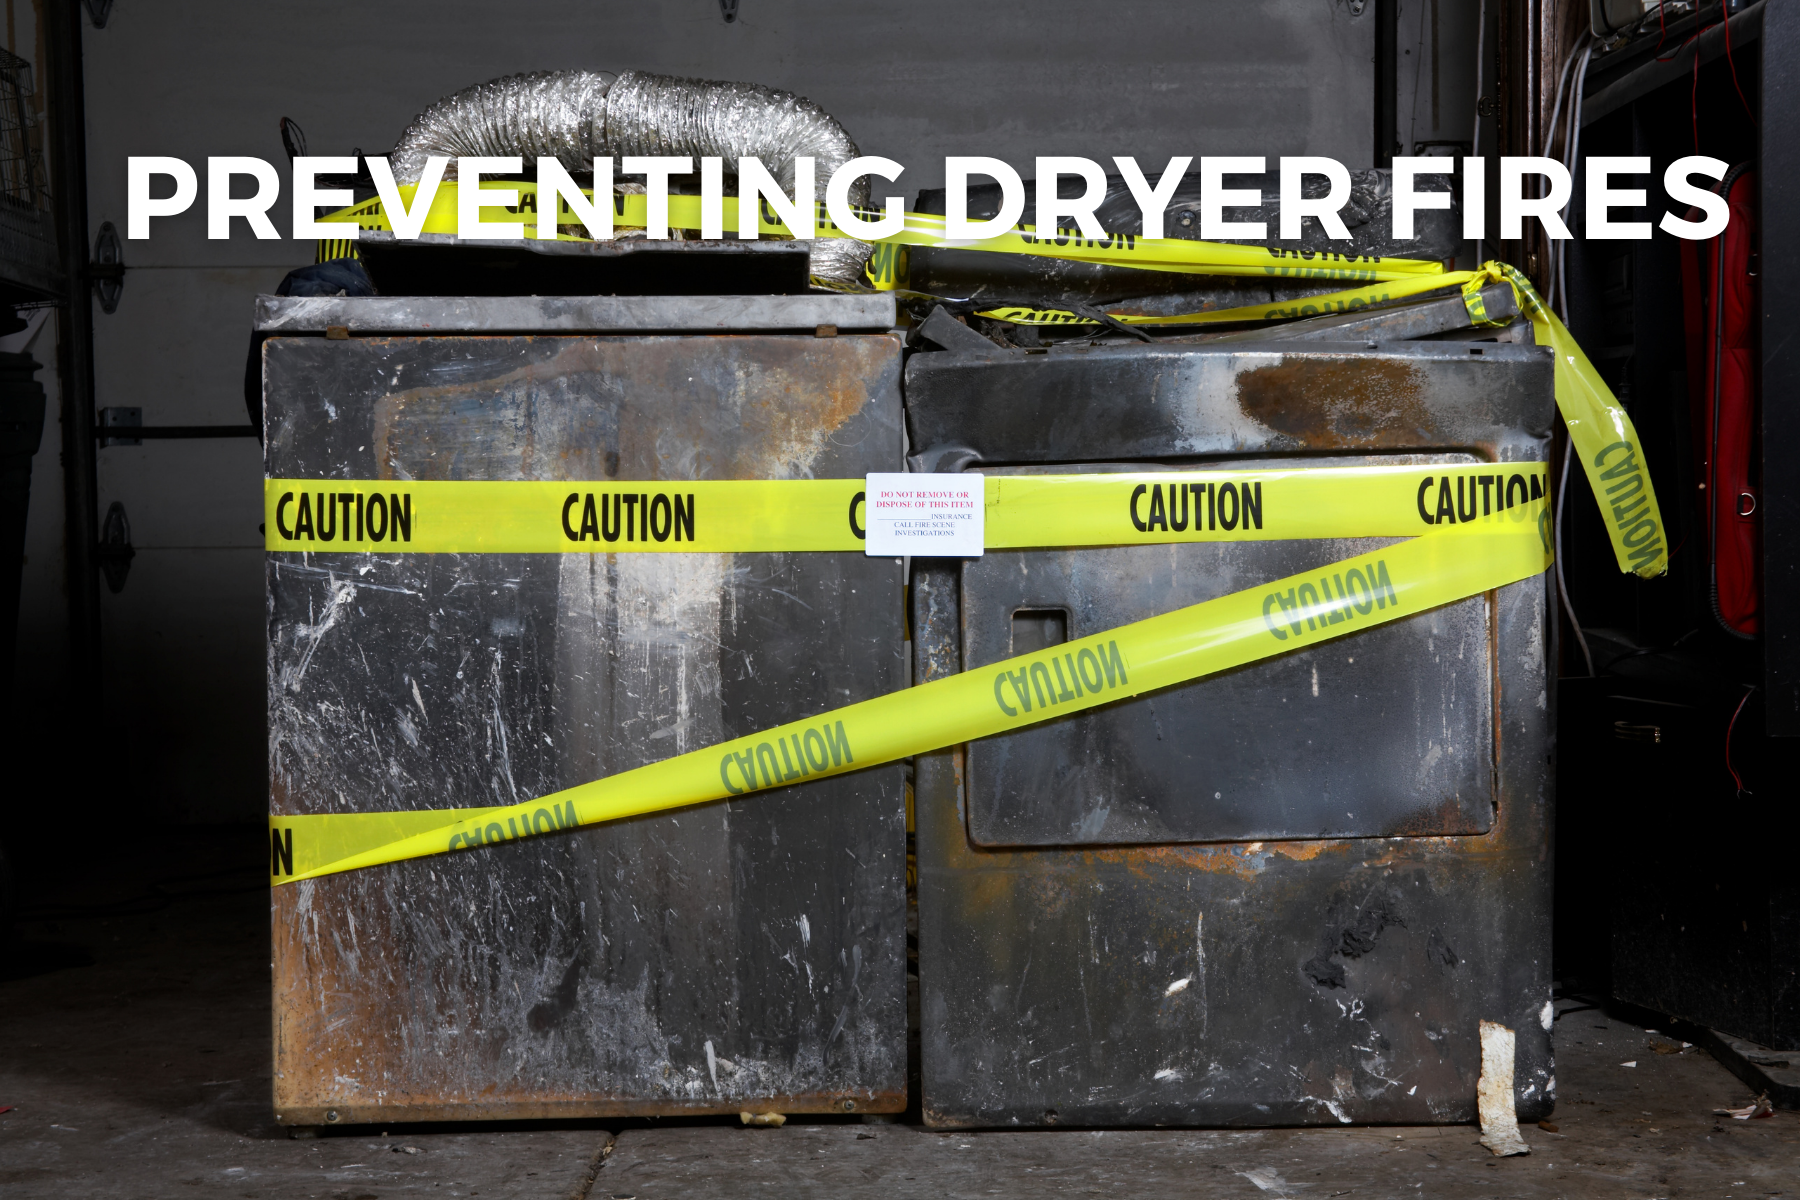 How to Prevent Dryer Fires